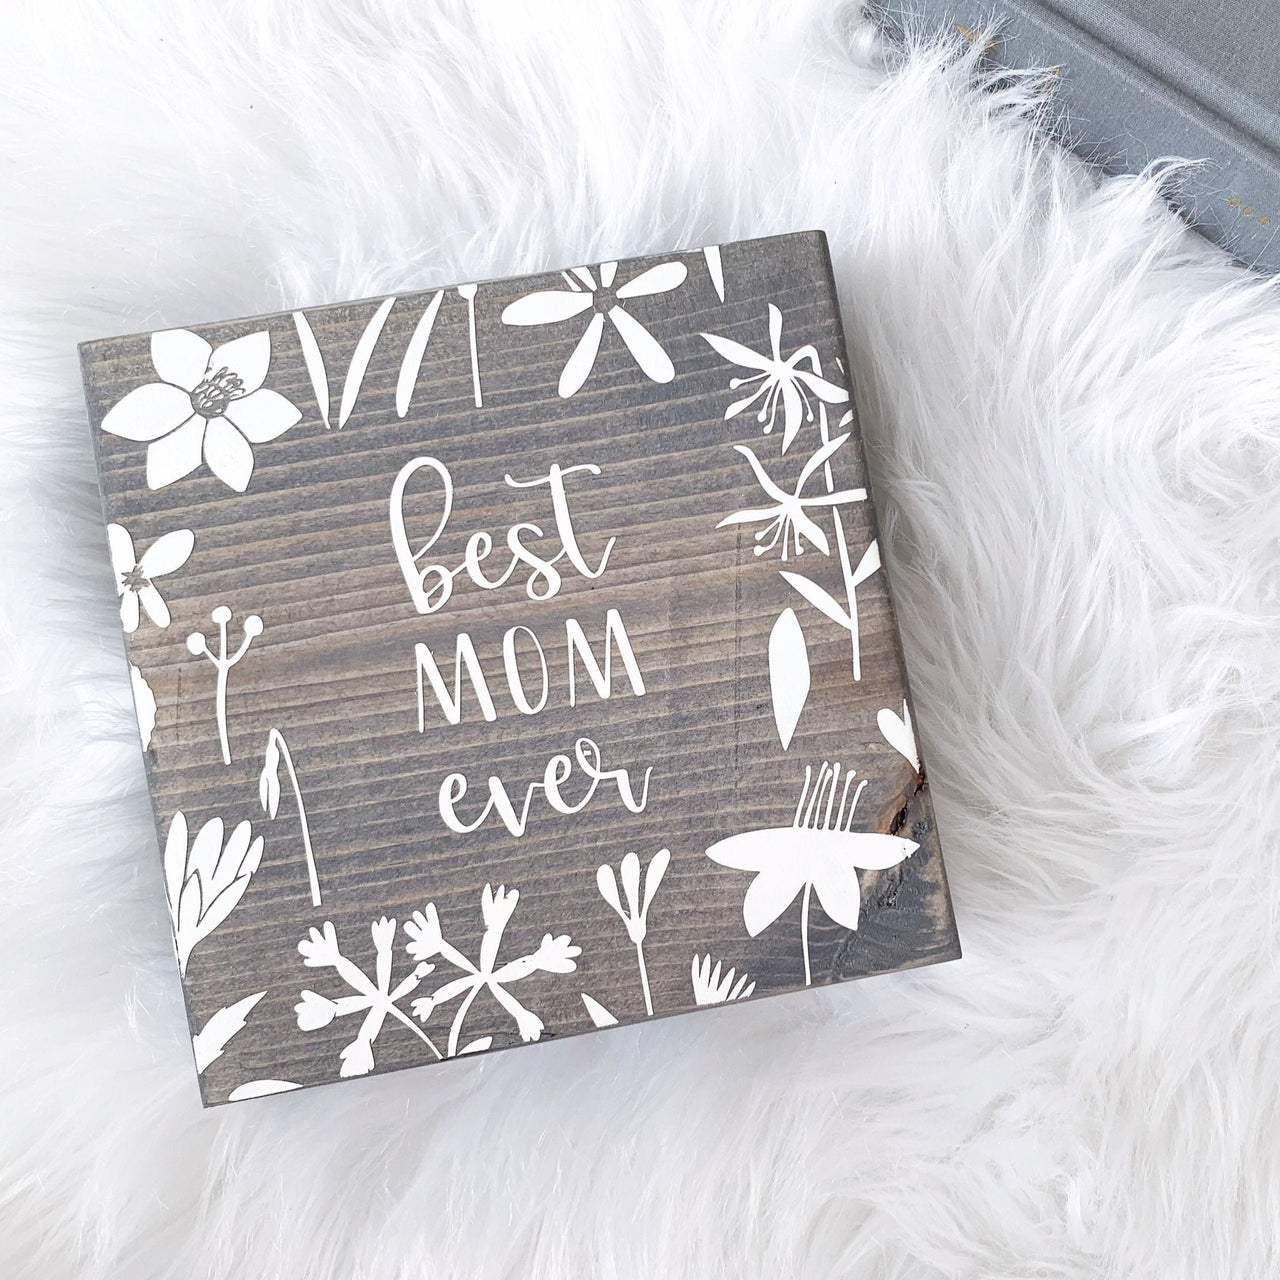 Best Mom Ever Flower Sign | Desk Block